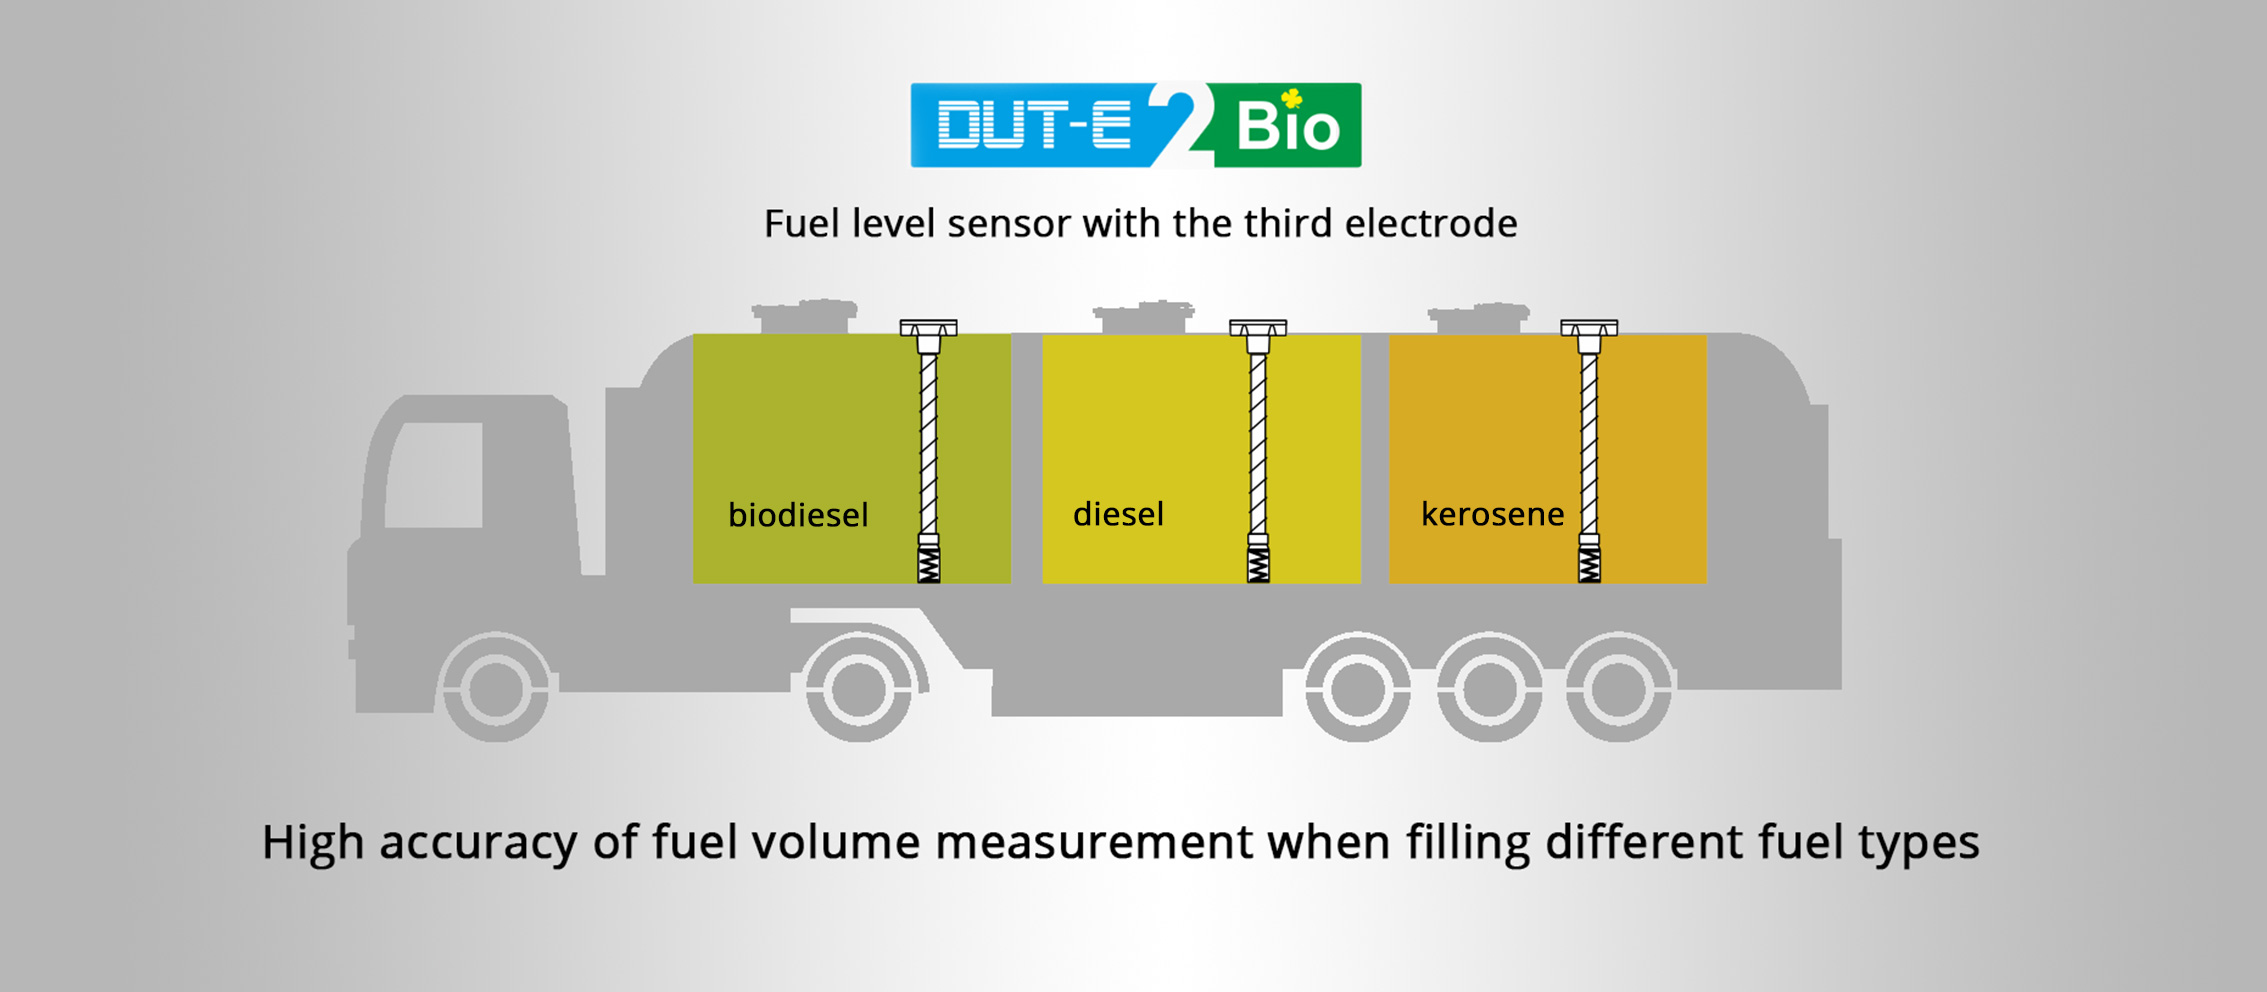 DUT-E 2Bio: high accuracy of fuel volume measurement when filling different fuel types